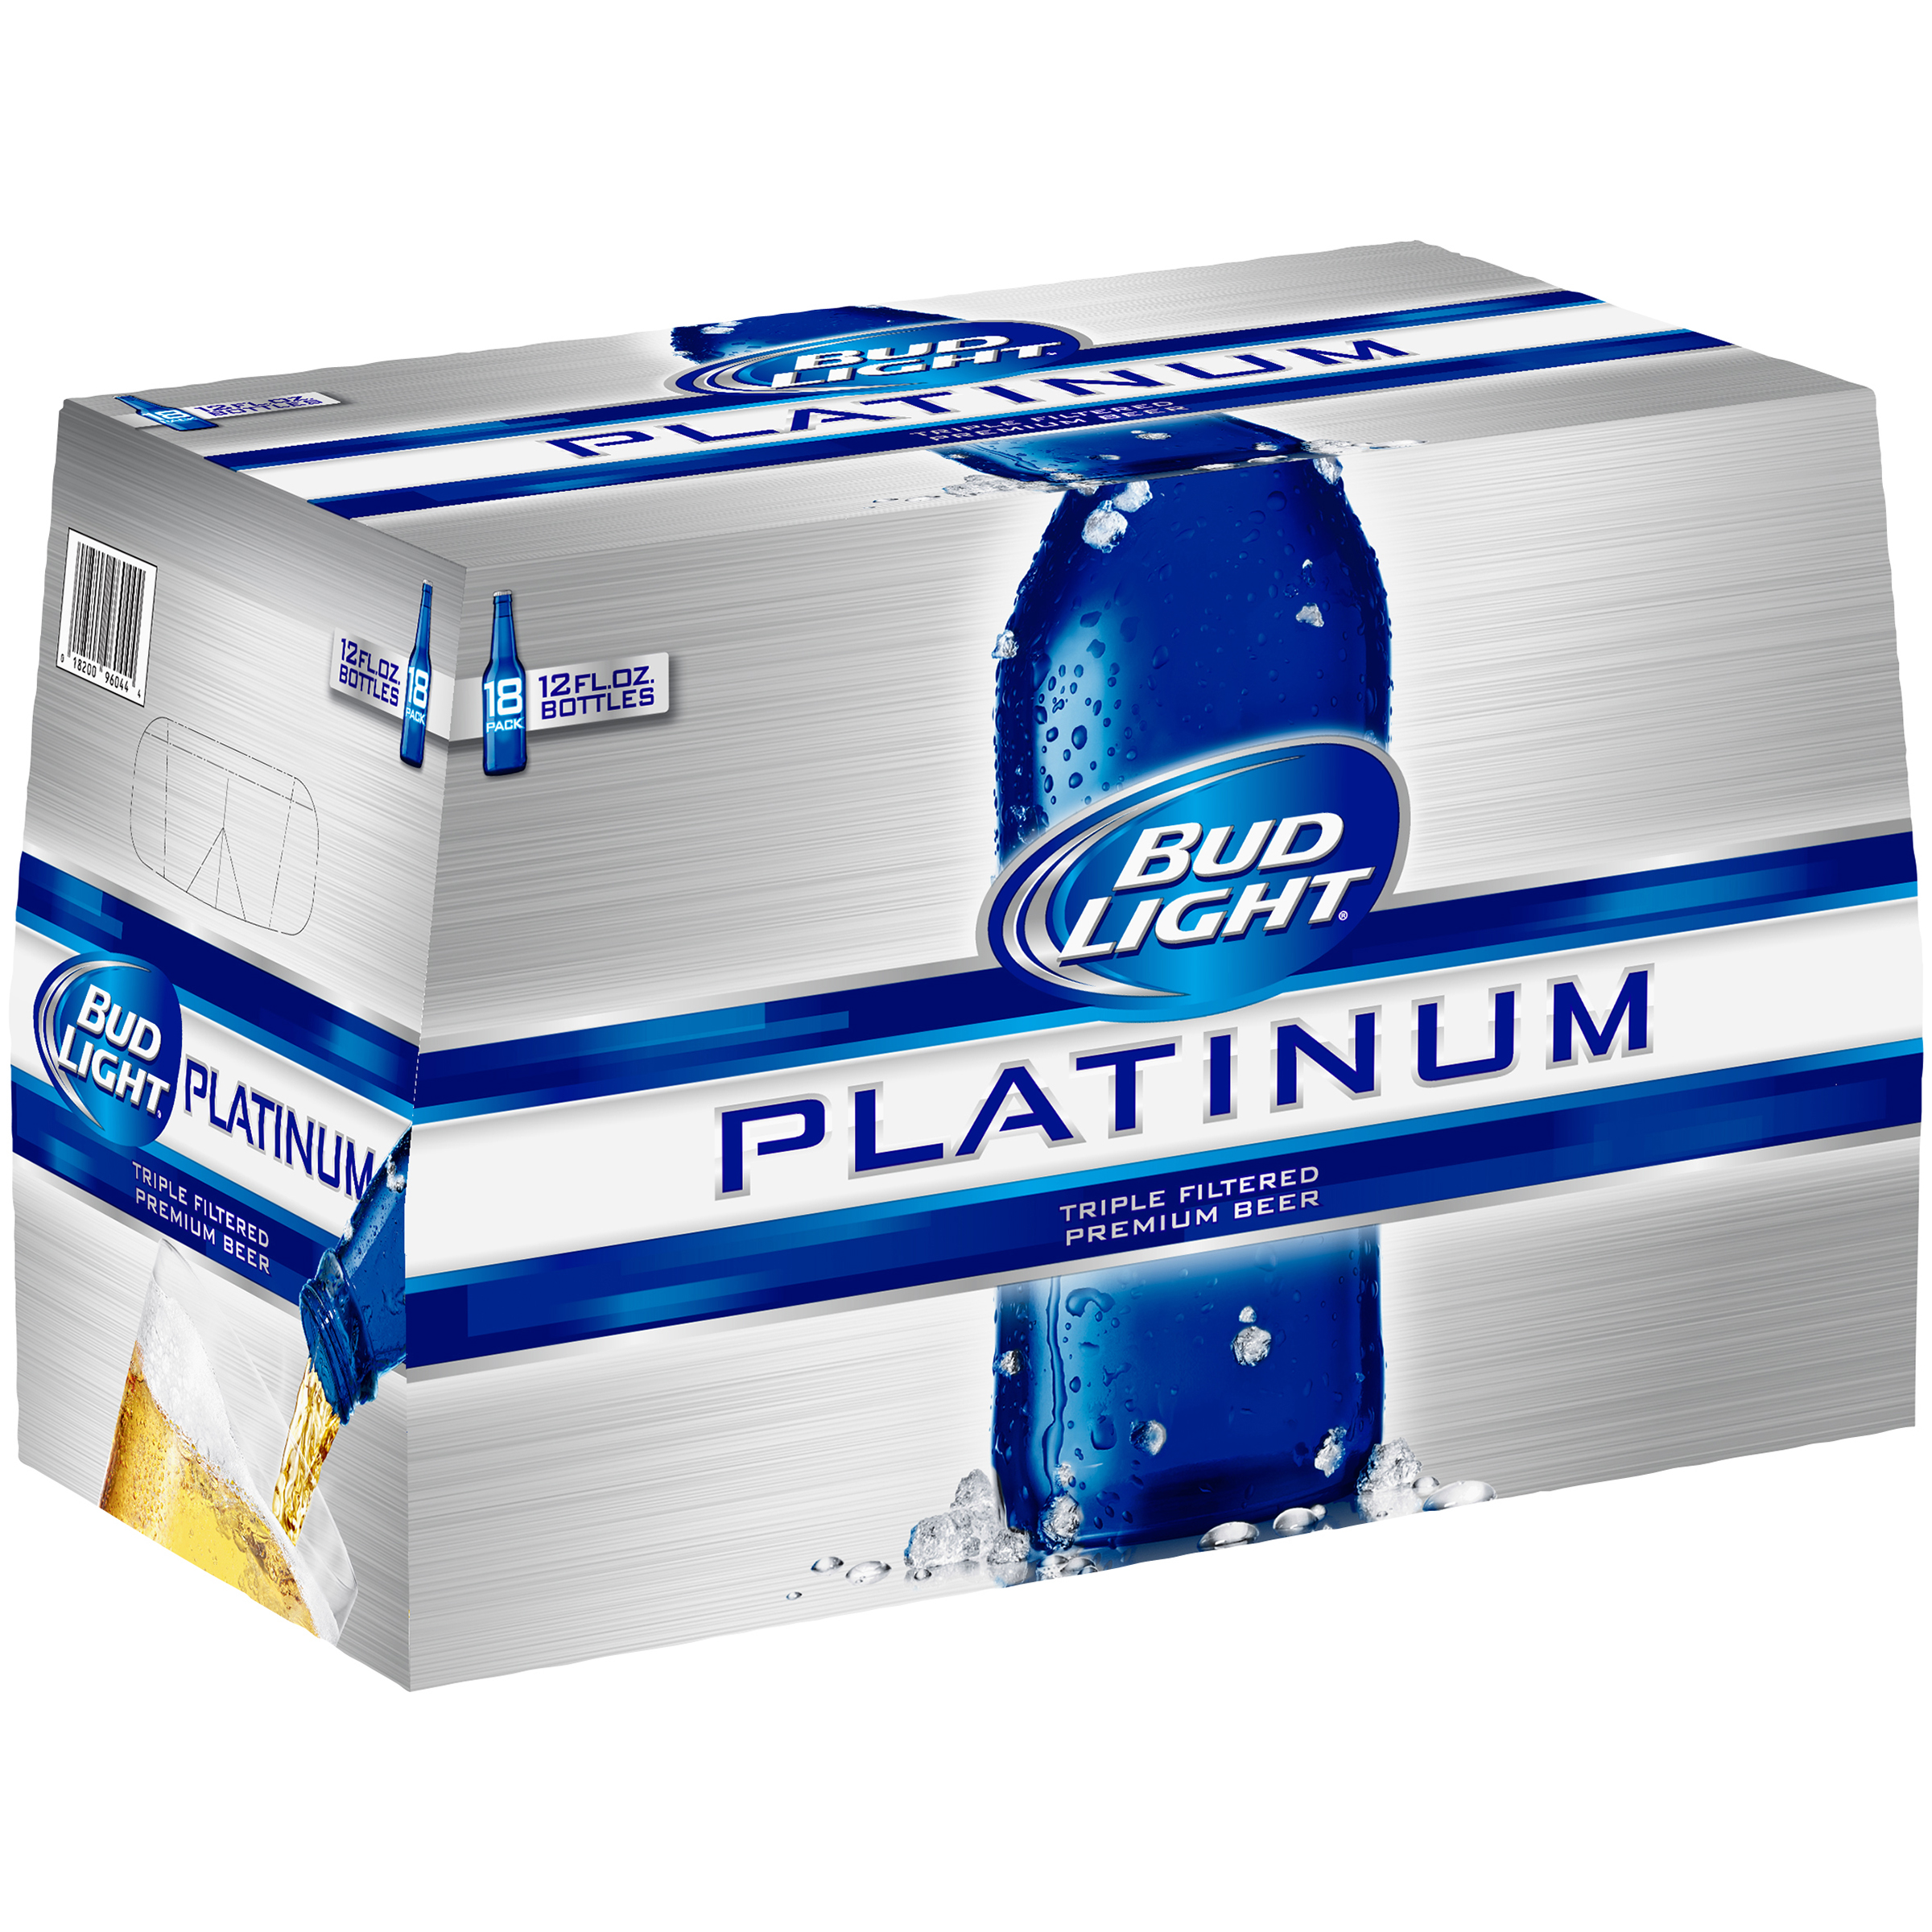 How Much Does A 30 Pack Of Bud Light Cost In Maryland Ideas